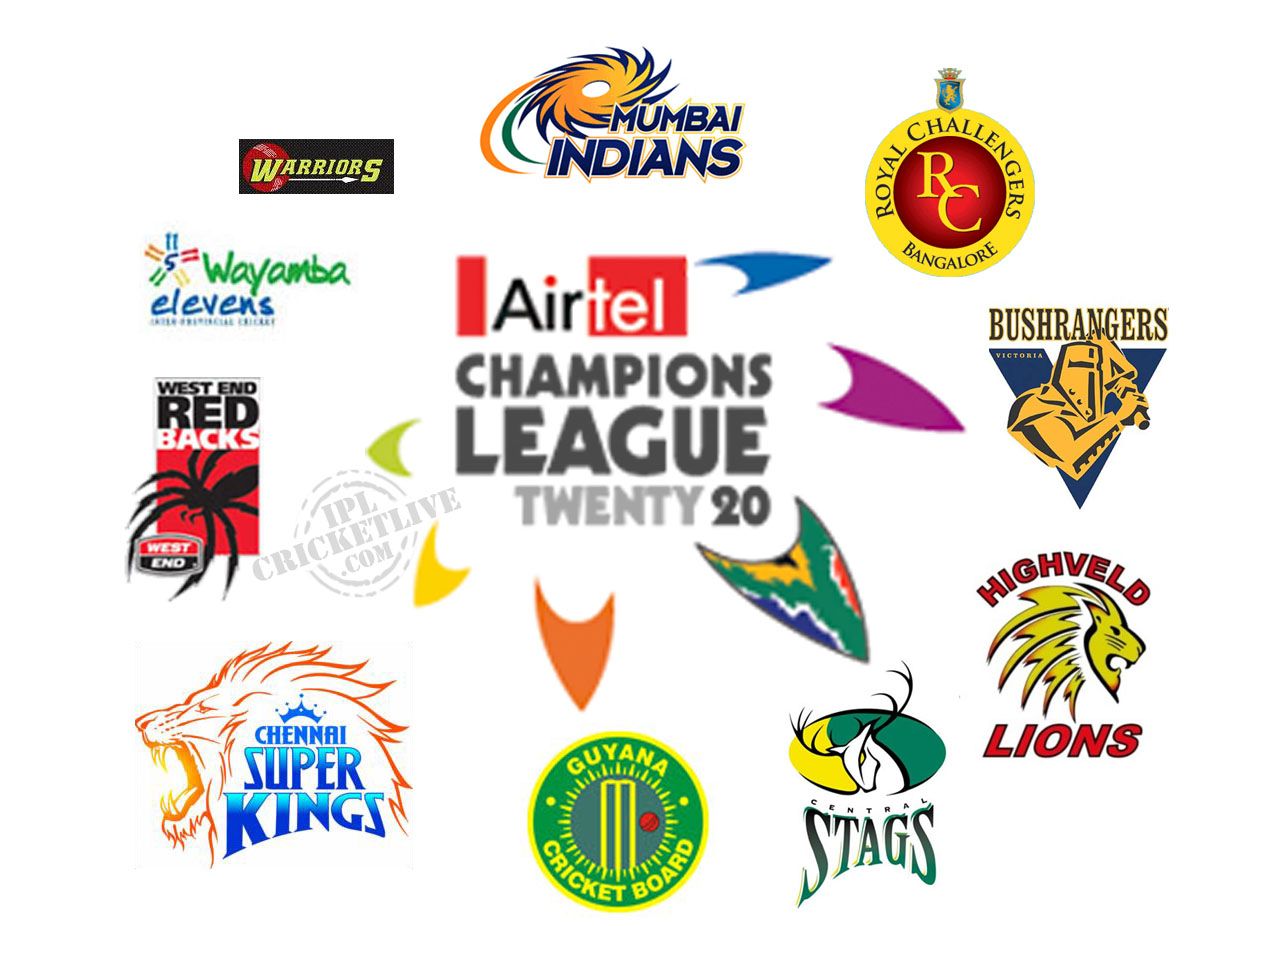 New S World Airtel Champion League T20 2010 Schedule